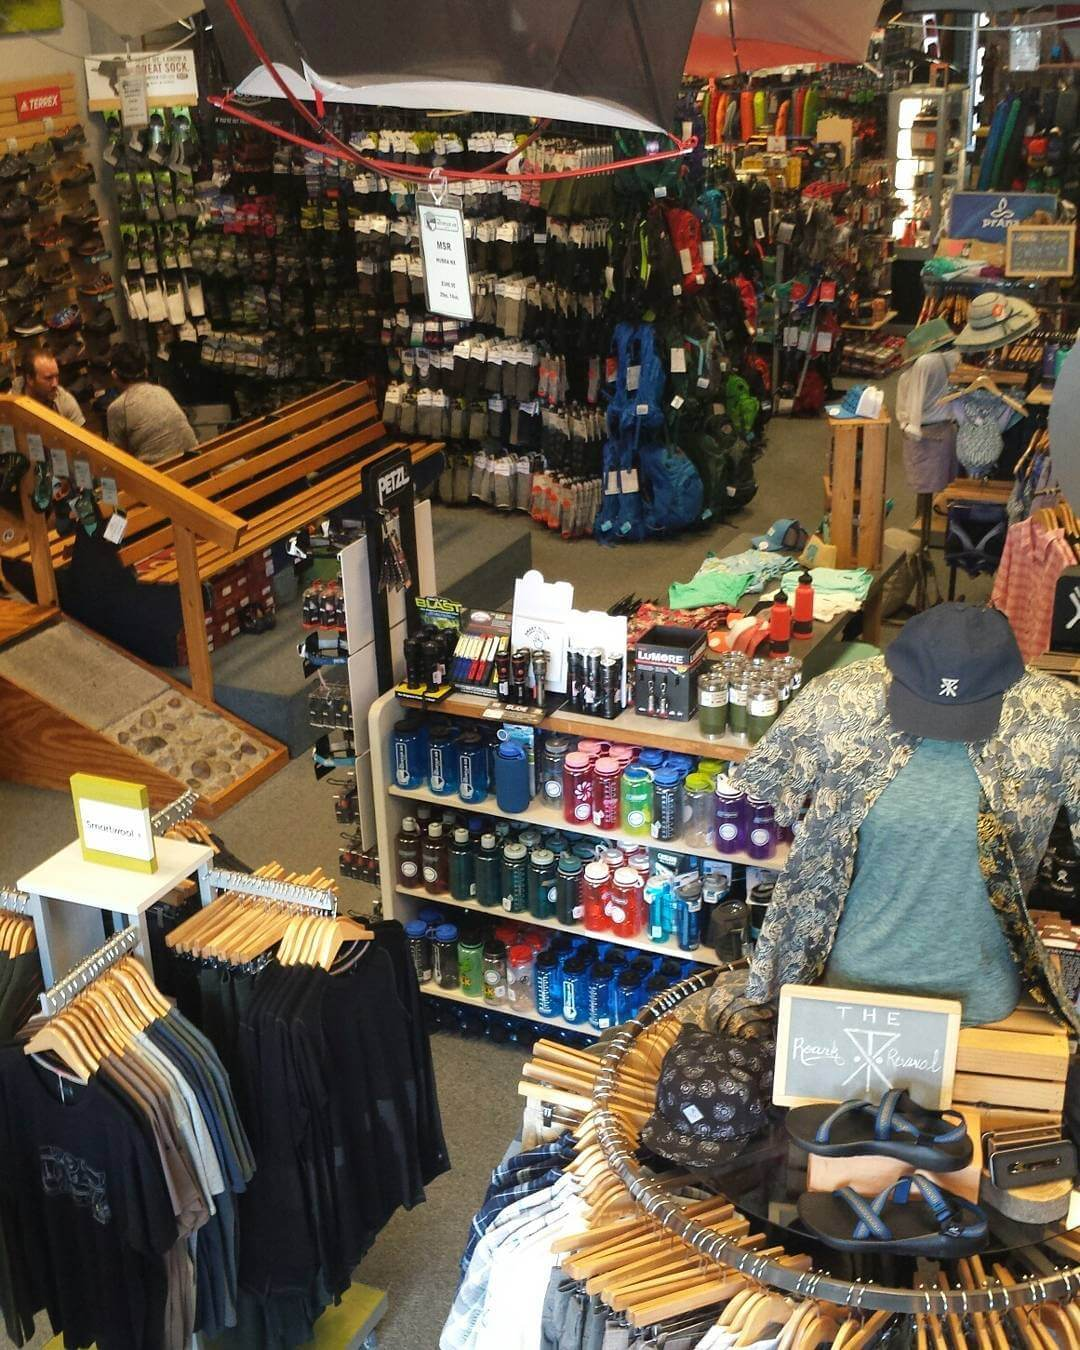 Shopping at The Mountain Air Clothing Store in SLO